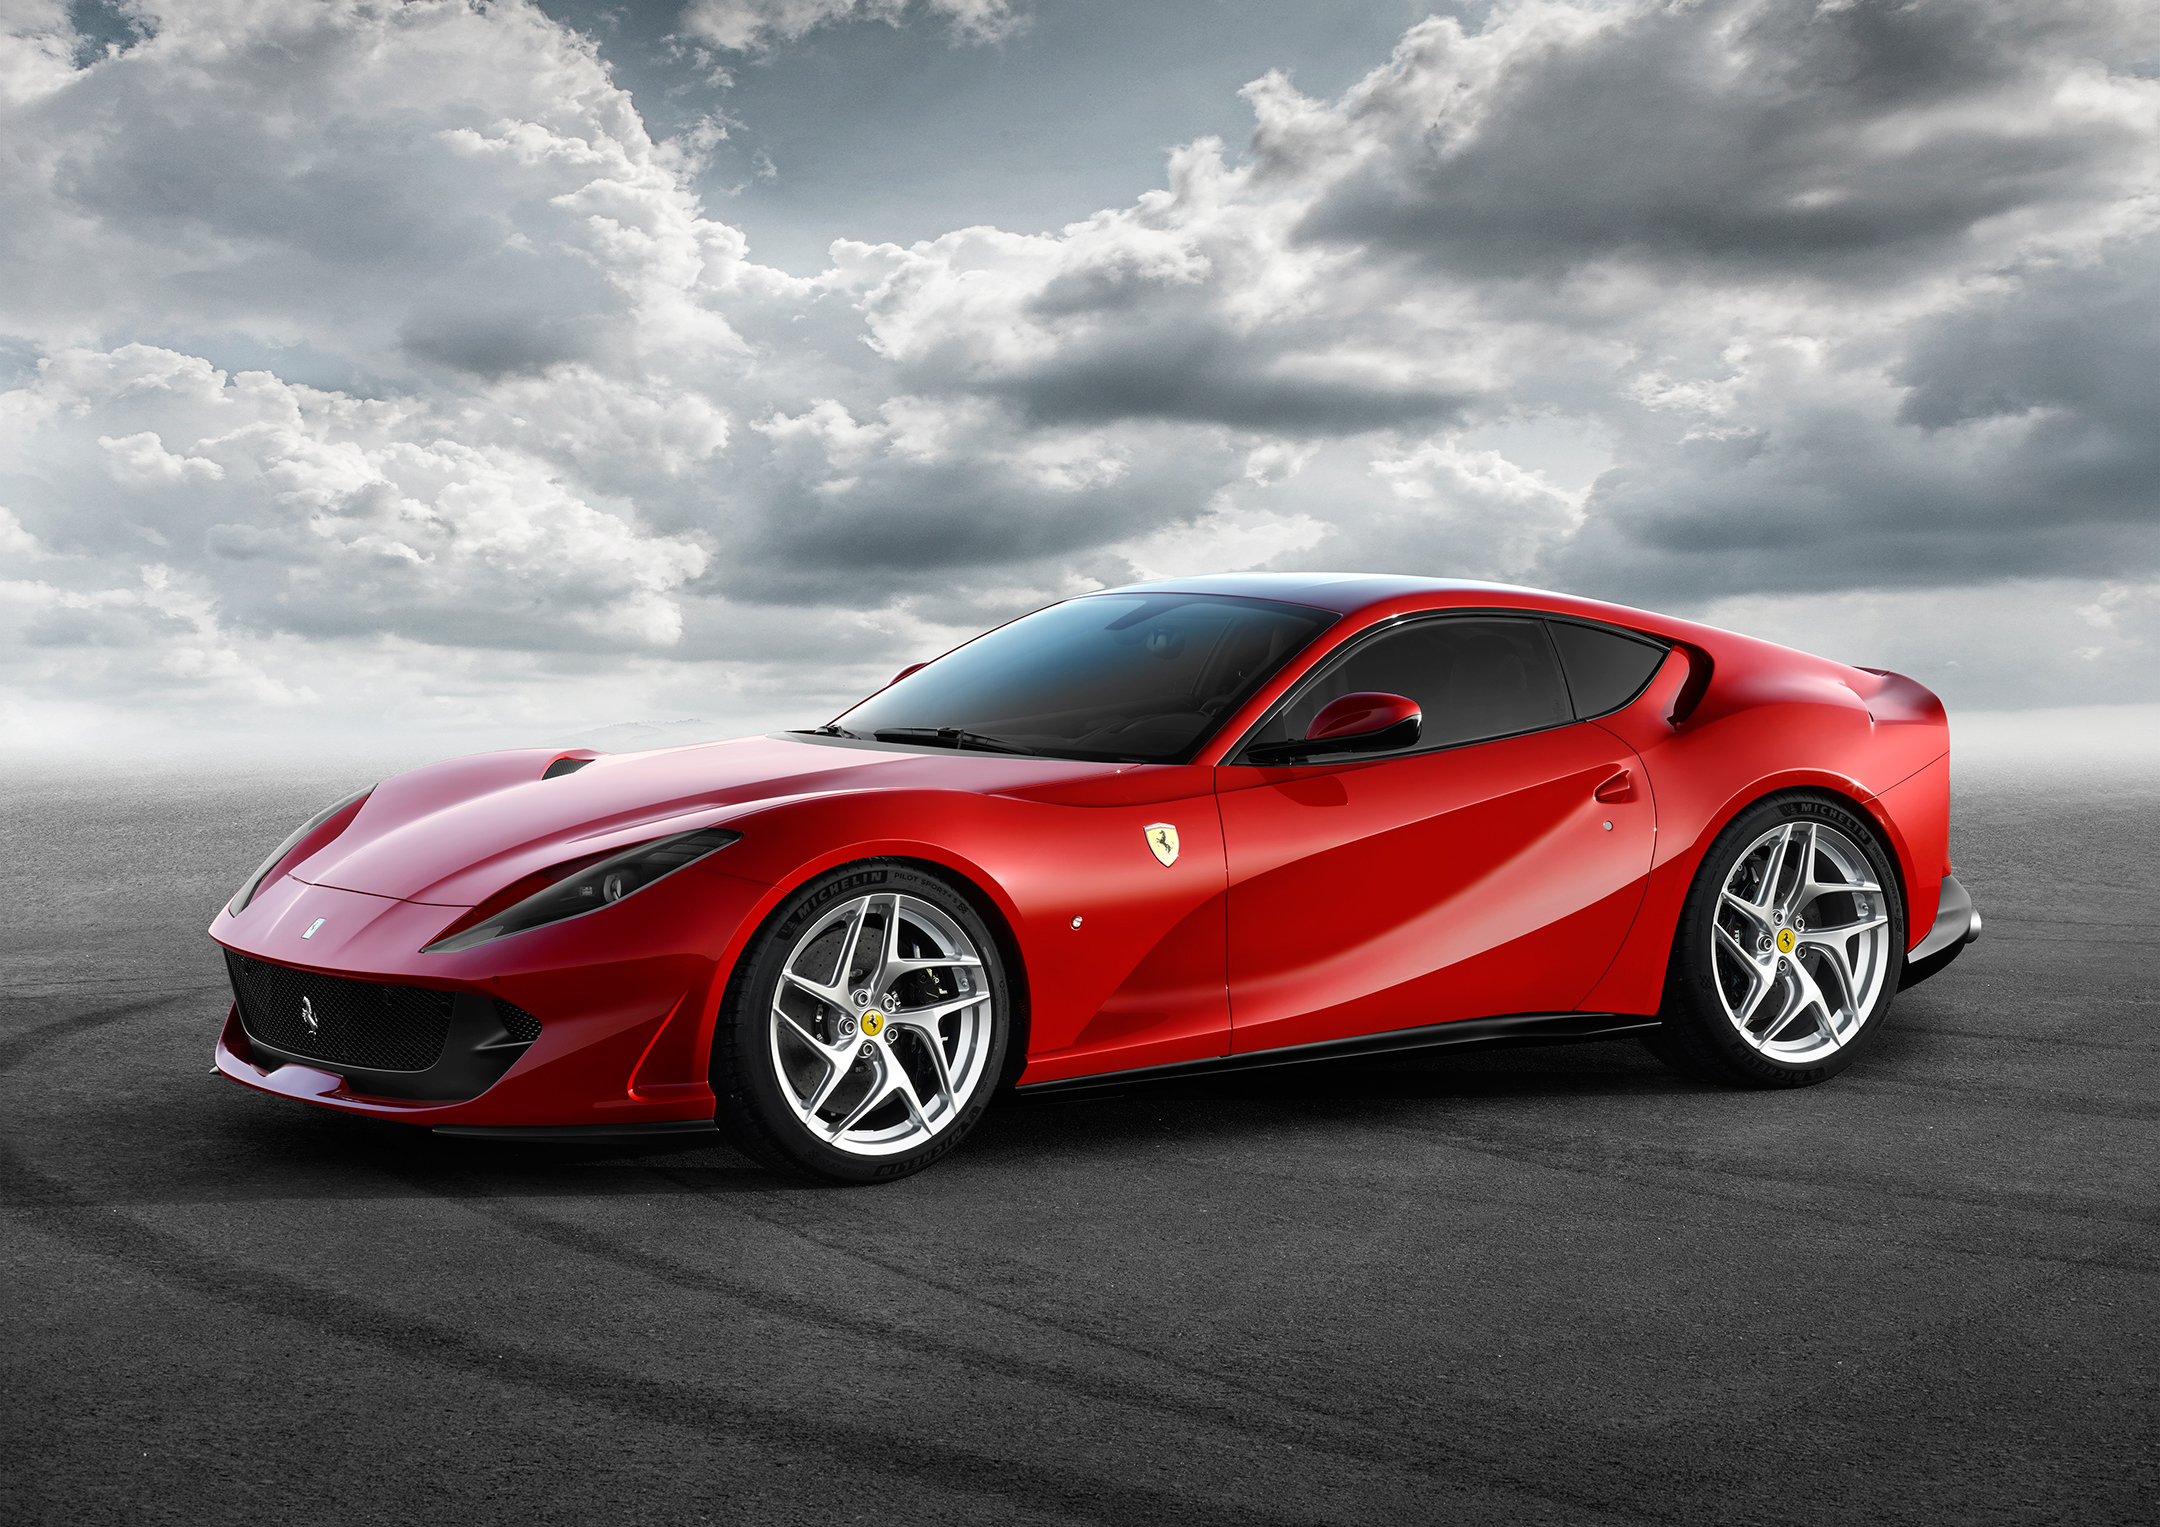 Ferrari 812 Superfast - 2017 - profil avant / front side-face